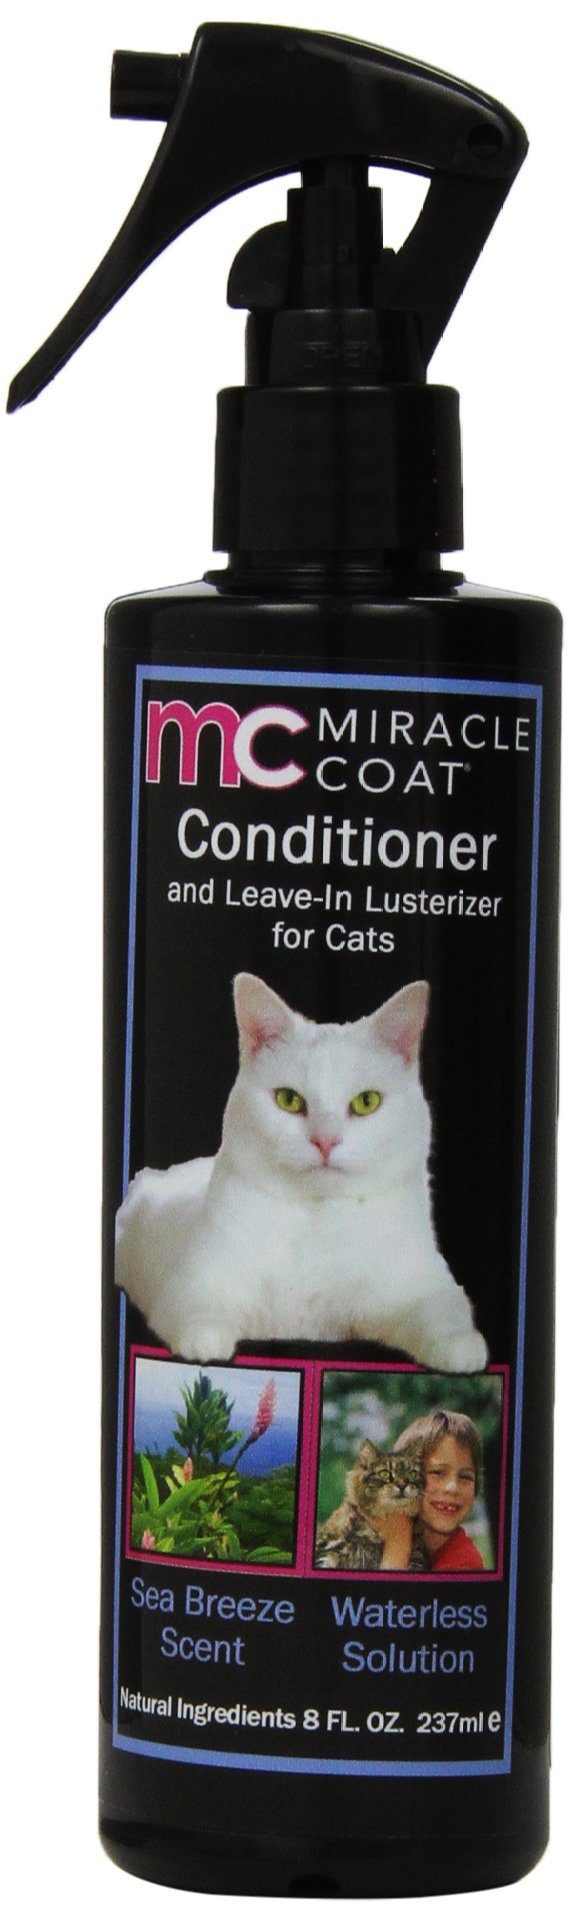 Miracle Coat Leave-in Conditioner & Lusterizer for Cats 8 oz.